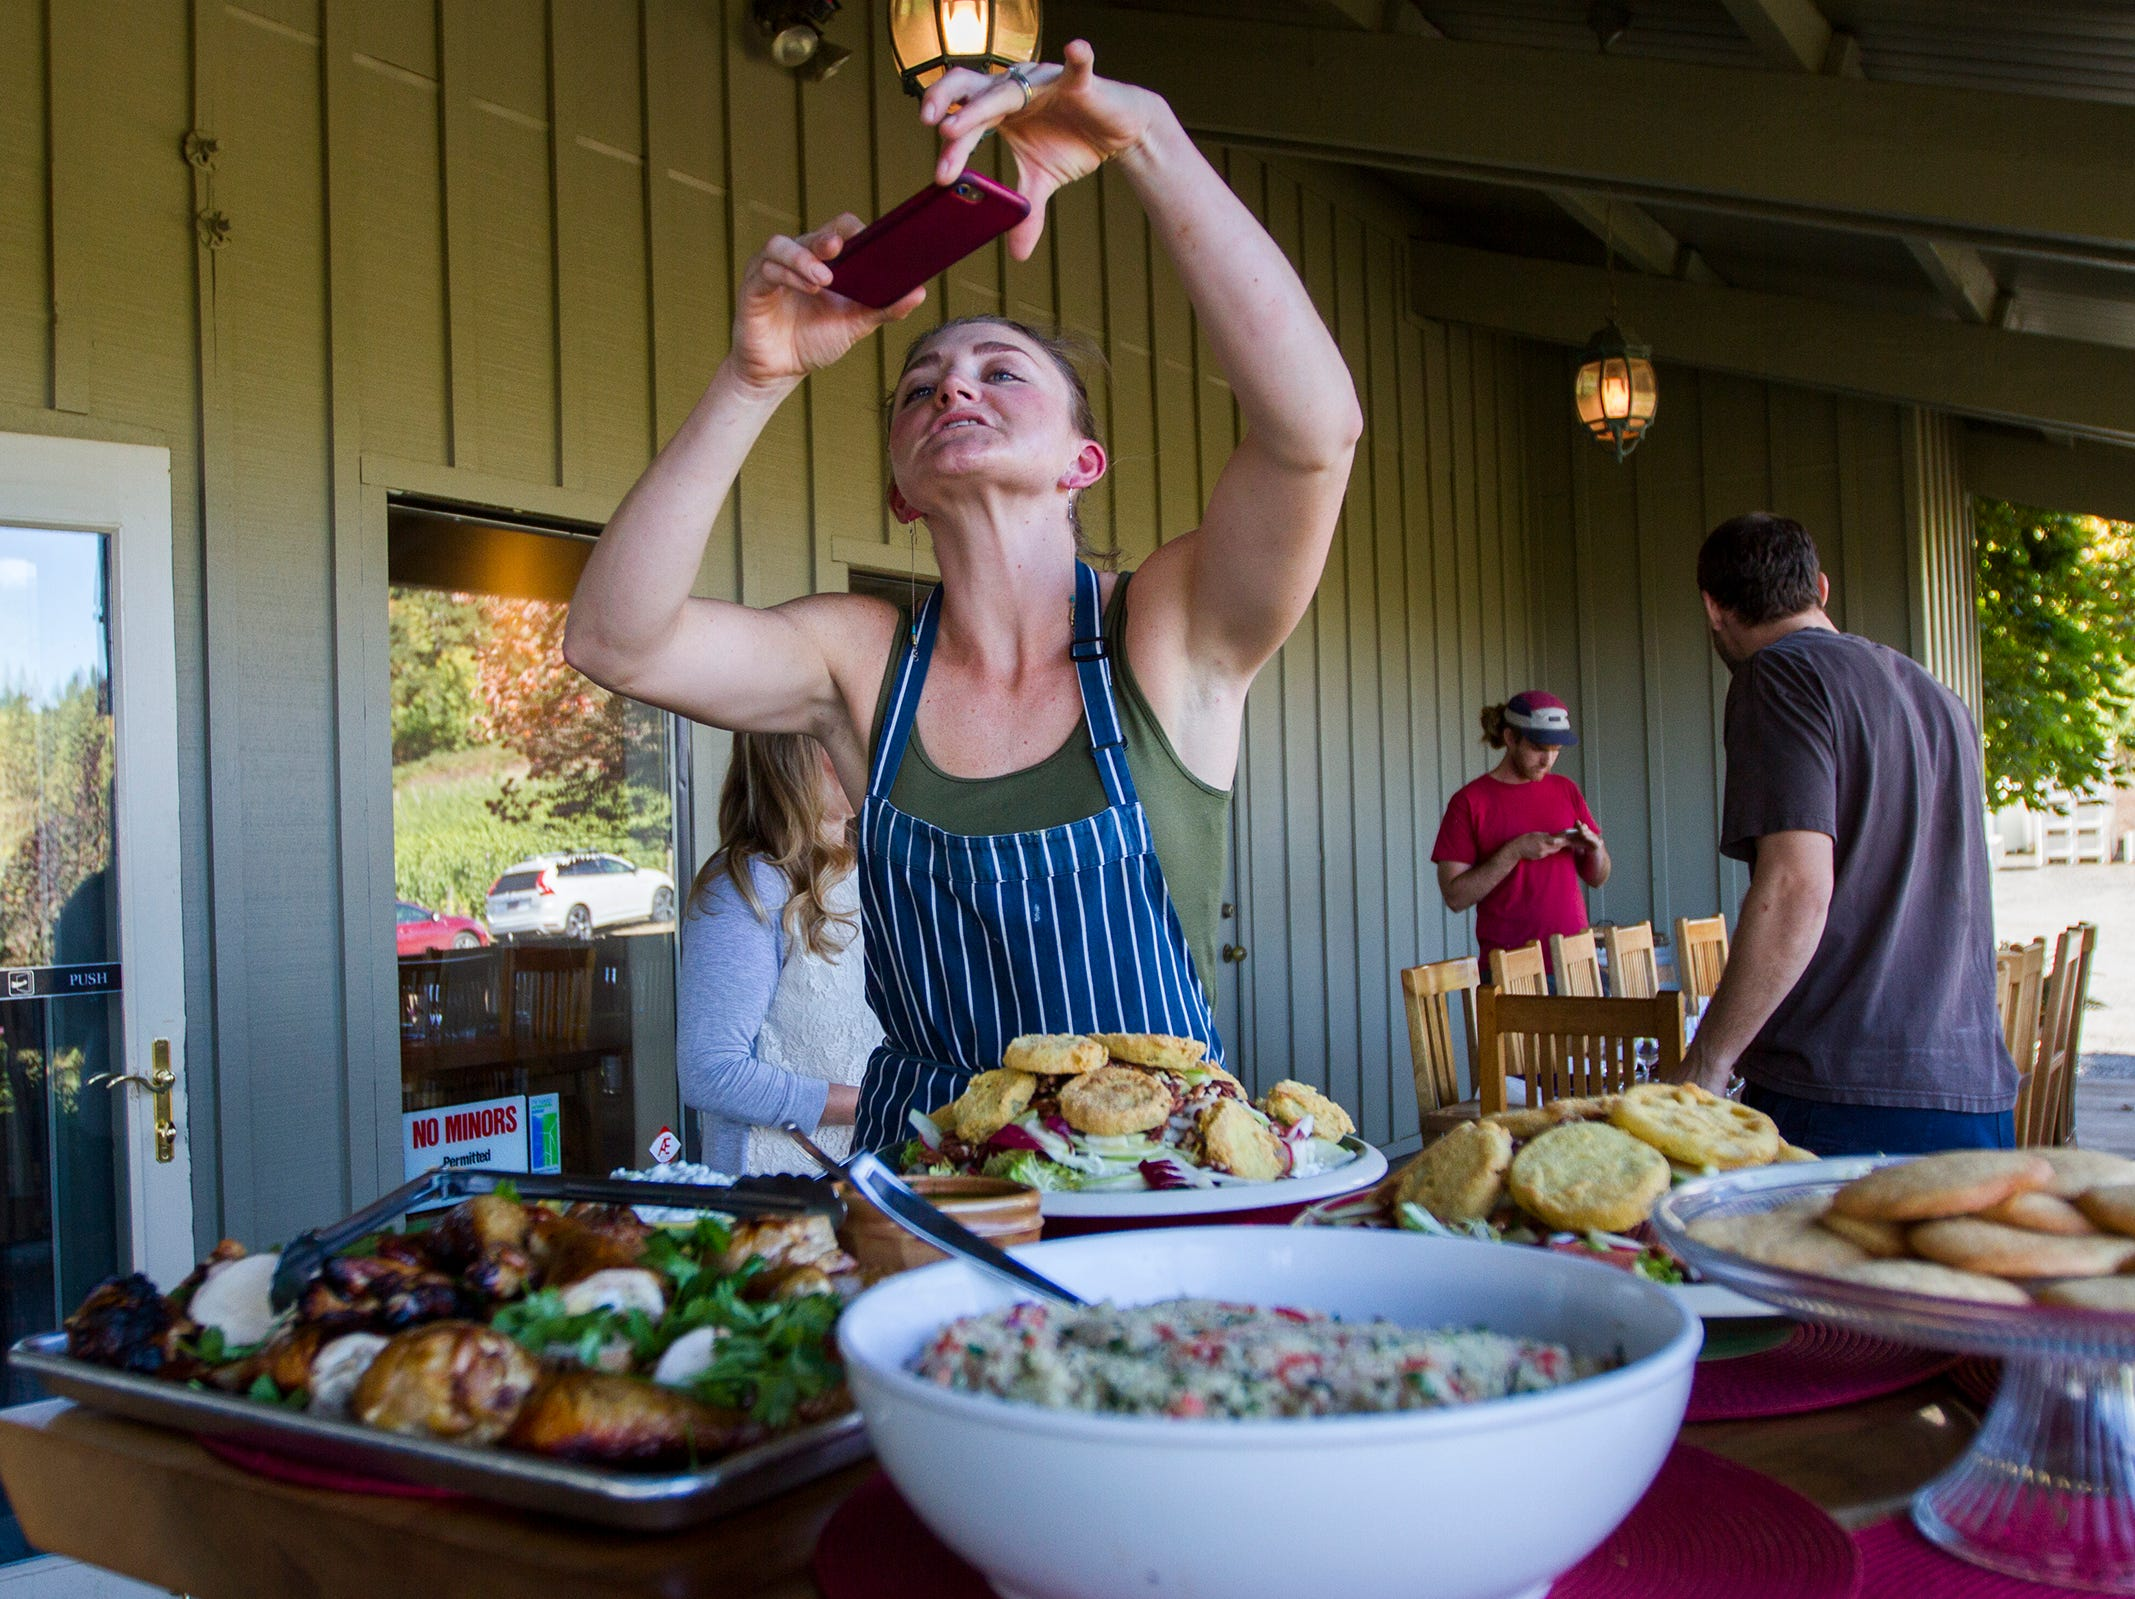 Cristom Vineyards chef Kat LeSueur takes a photo of her prepared meals before harvest workers serve themselves at Cristom Winery on Tuesday, Oct. 2, 2018. During harvest season Willamette Valley wineries will sometimes hire a chef to cook for a crew working 12-hour days.